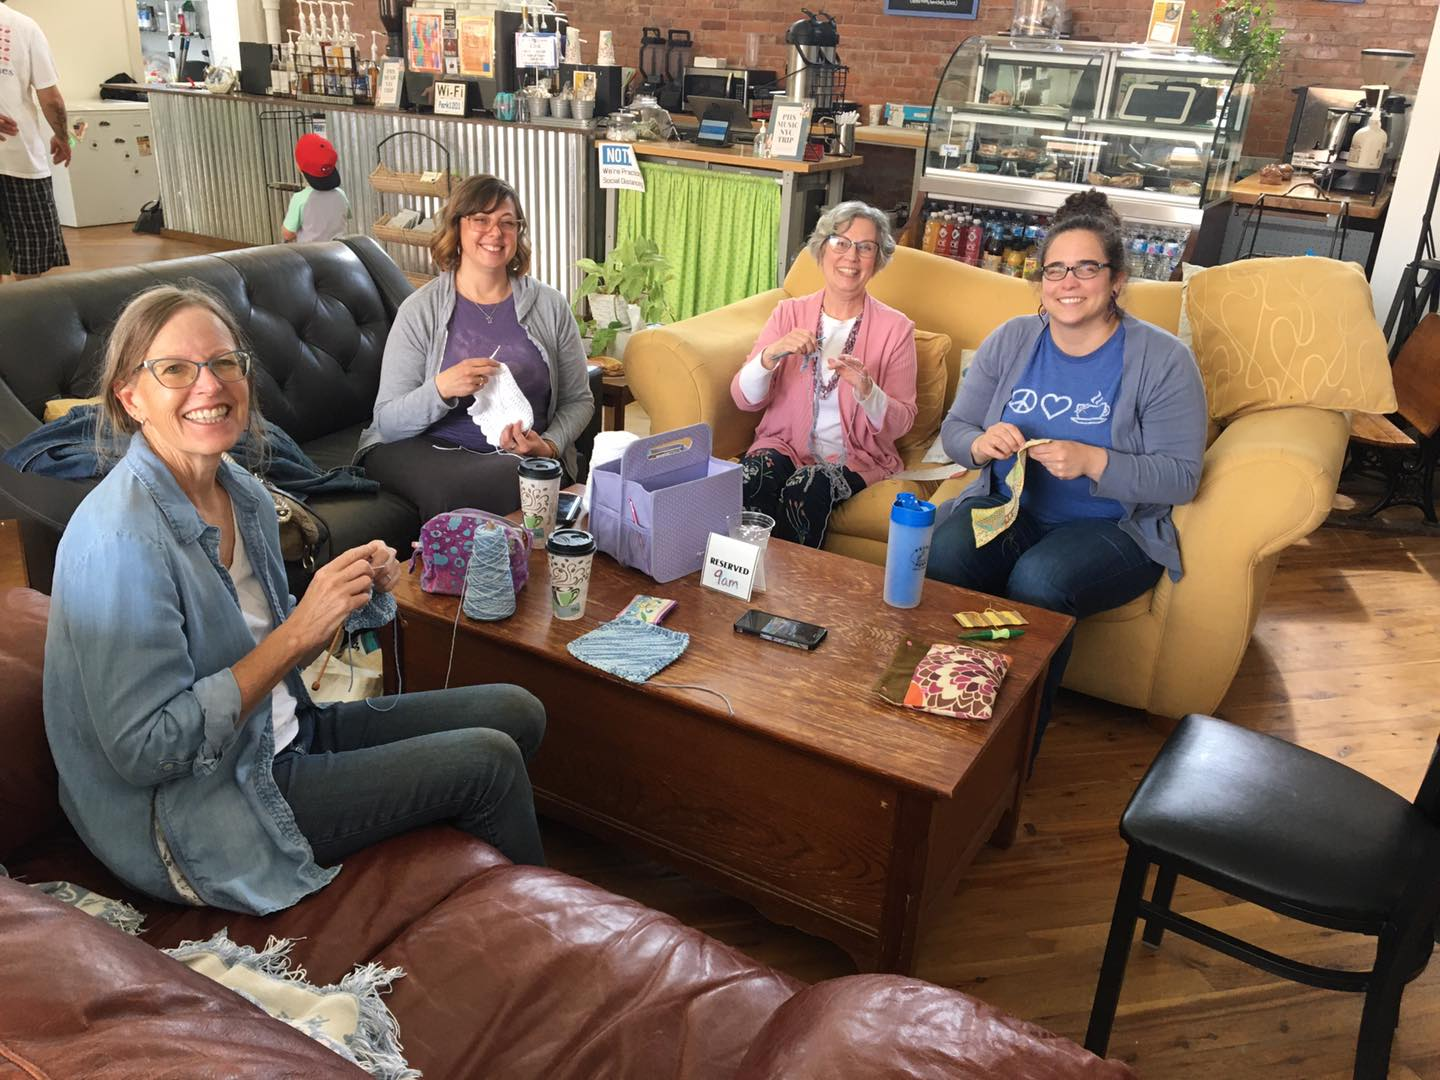 Four women holding knitting materials sit around a table.